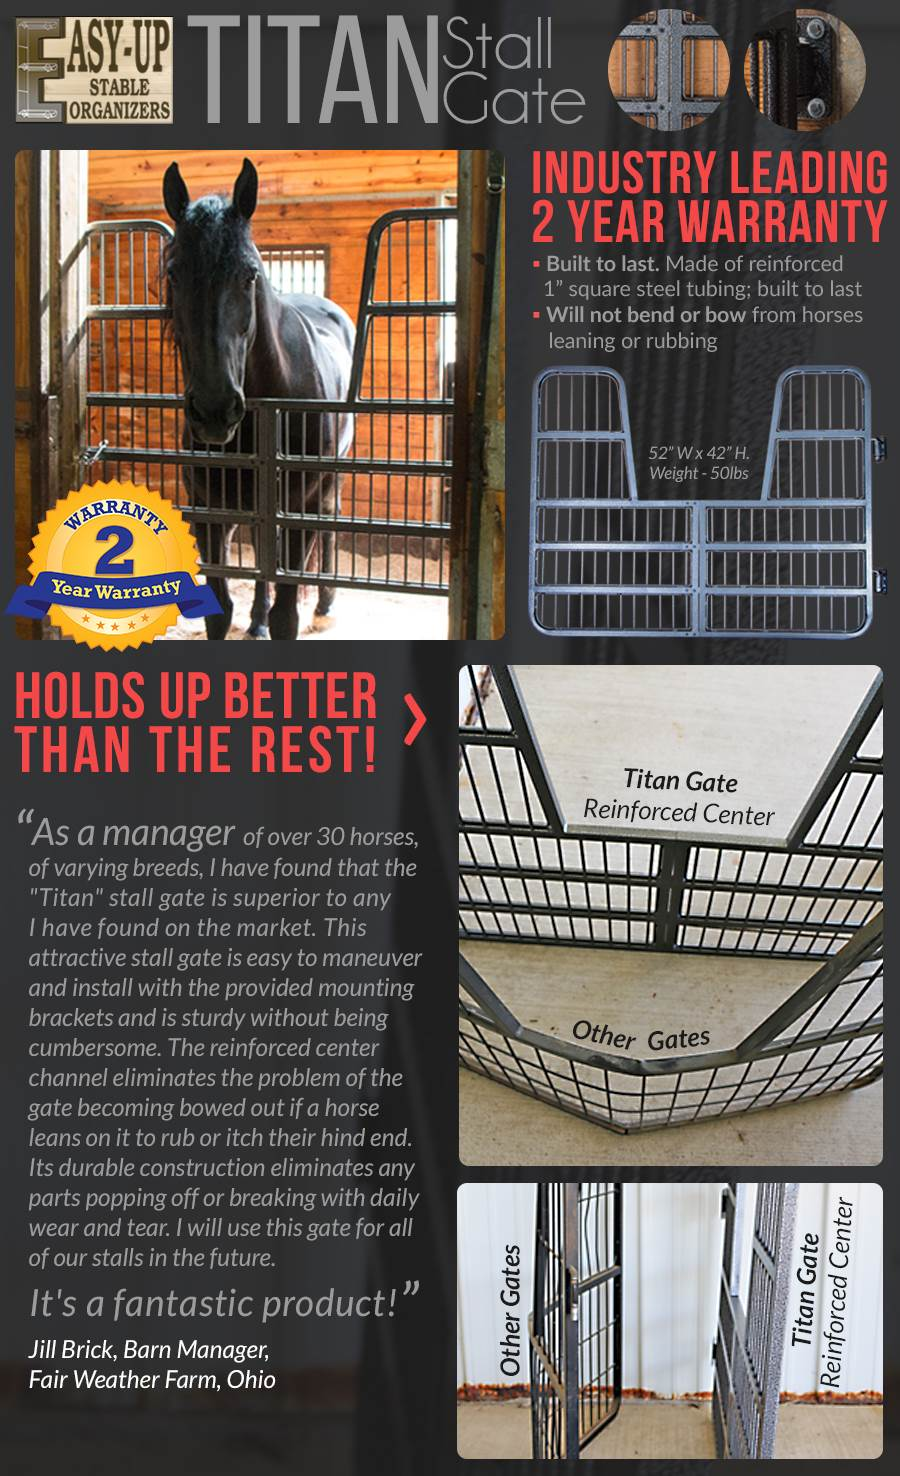 Easy-Up® Titan Stall Gate